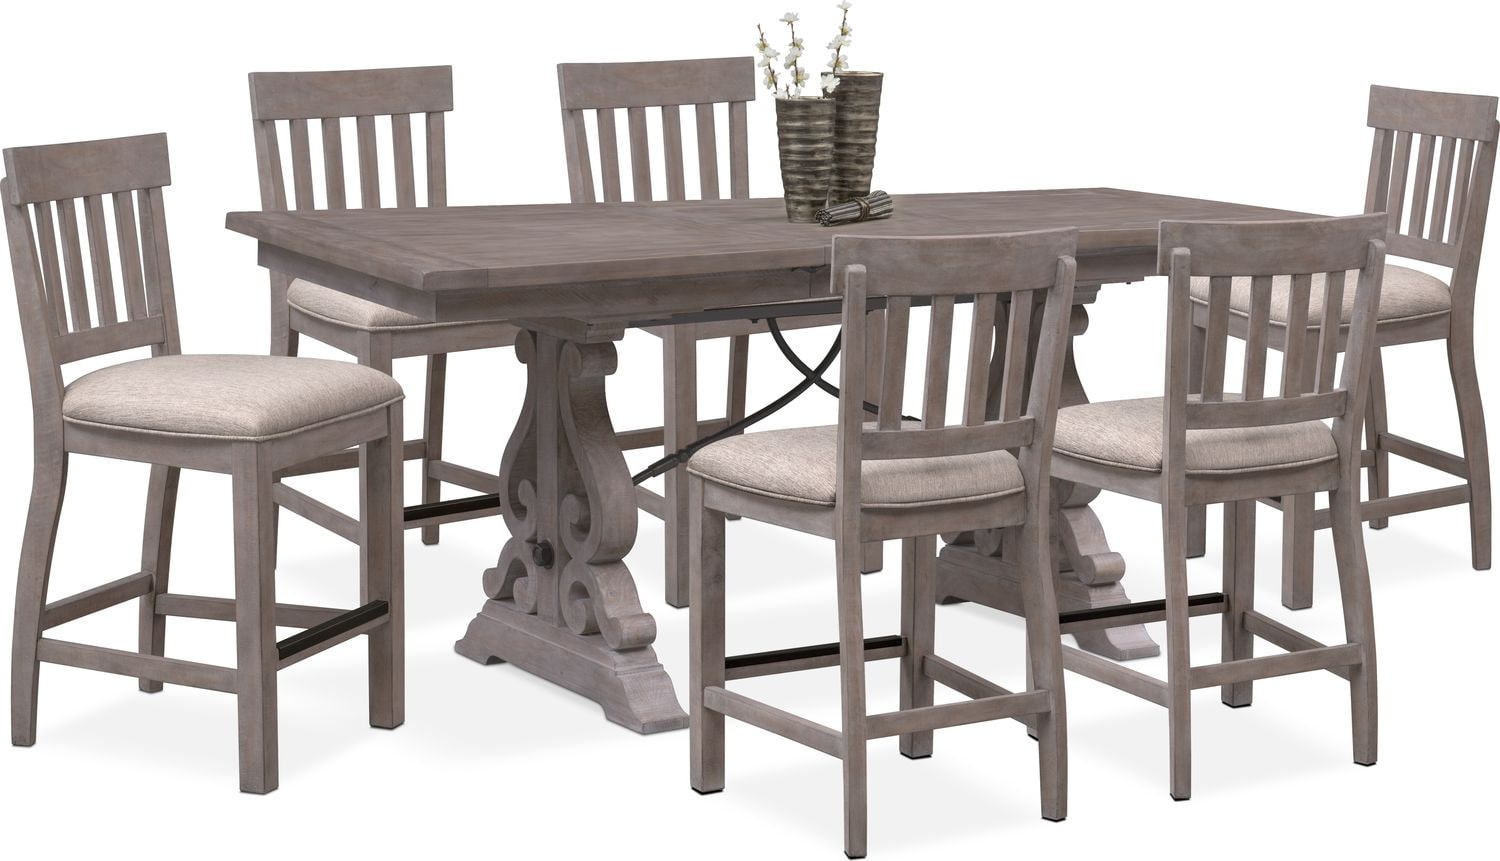 Charthouse Counter Height Dining Table And 6 Stools   Gray ...